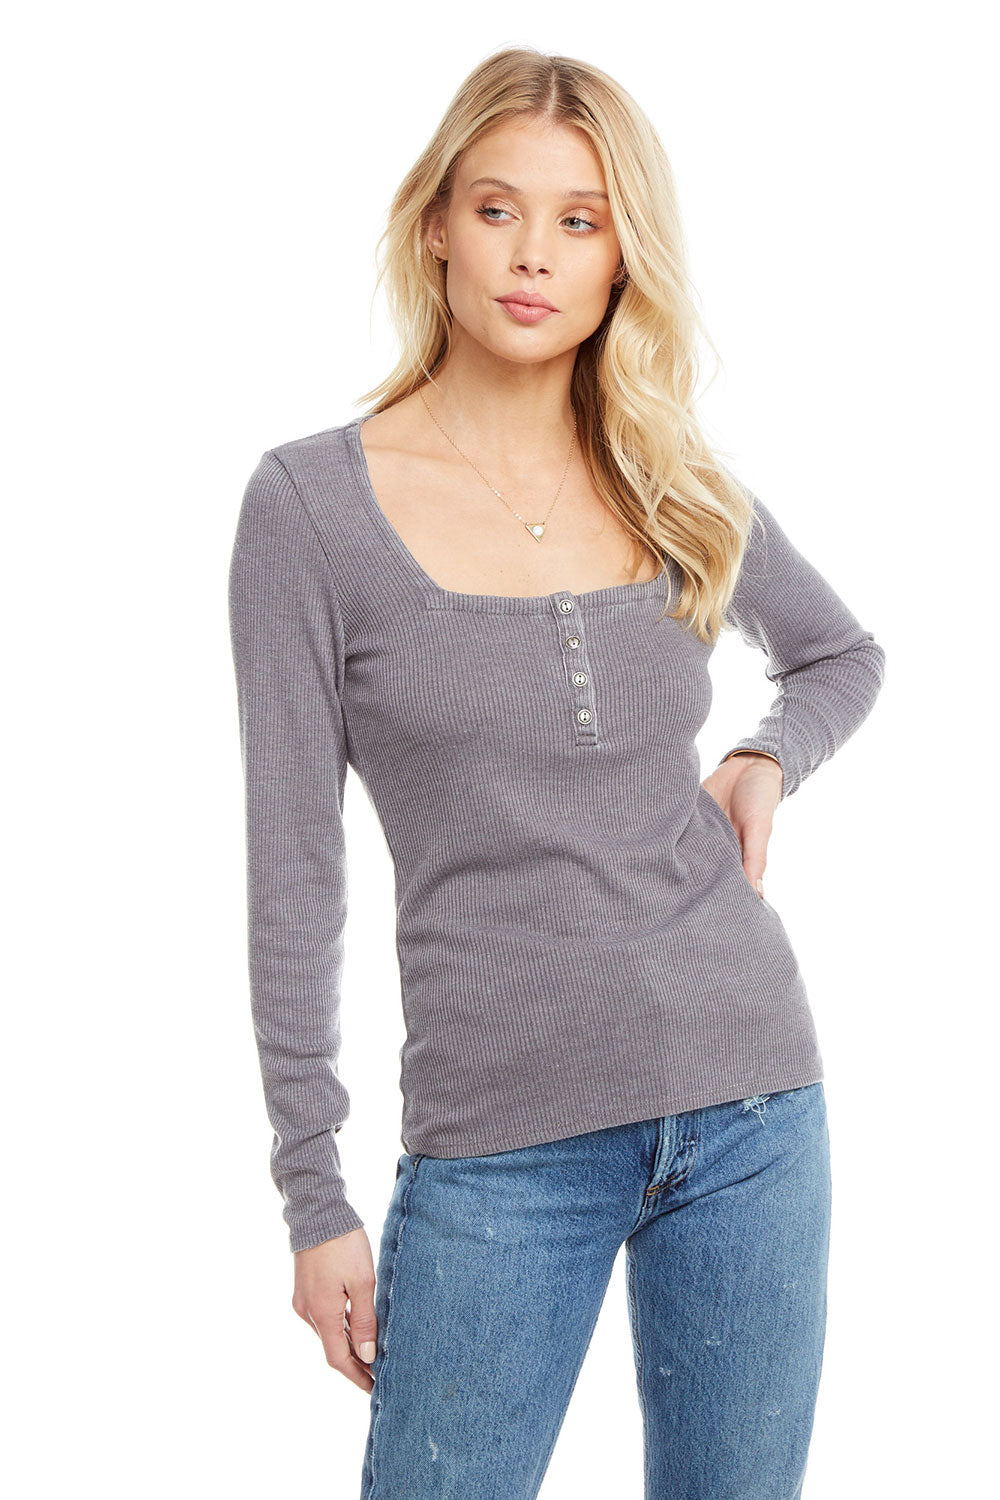 Cozy Rib Long Sleeve Square Neck Henley, WOMENS, chaserbrand.com,chaser clothing,chaser apparel,chaser los angeles